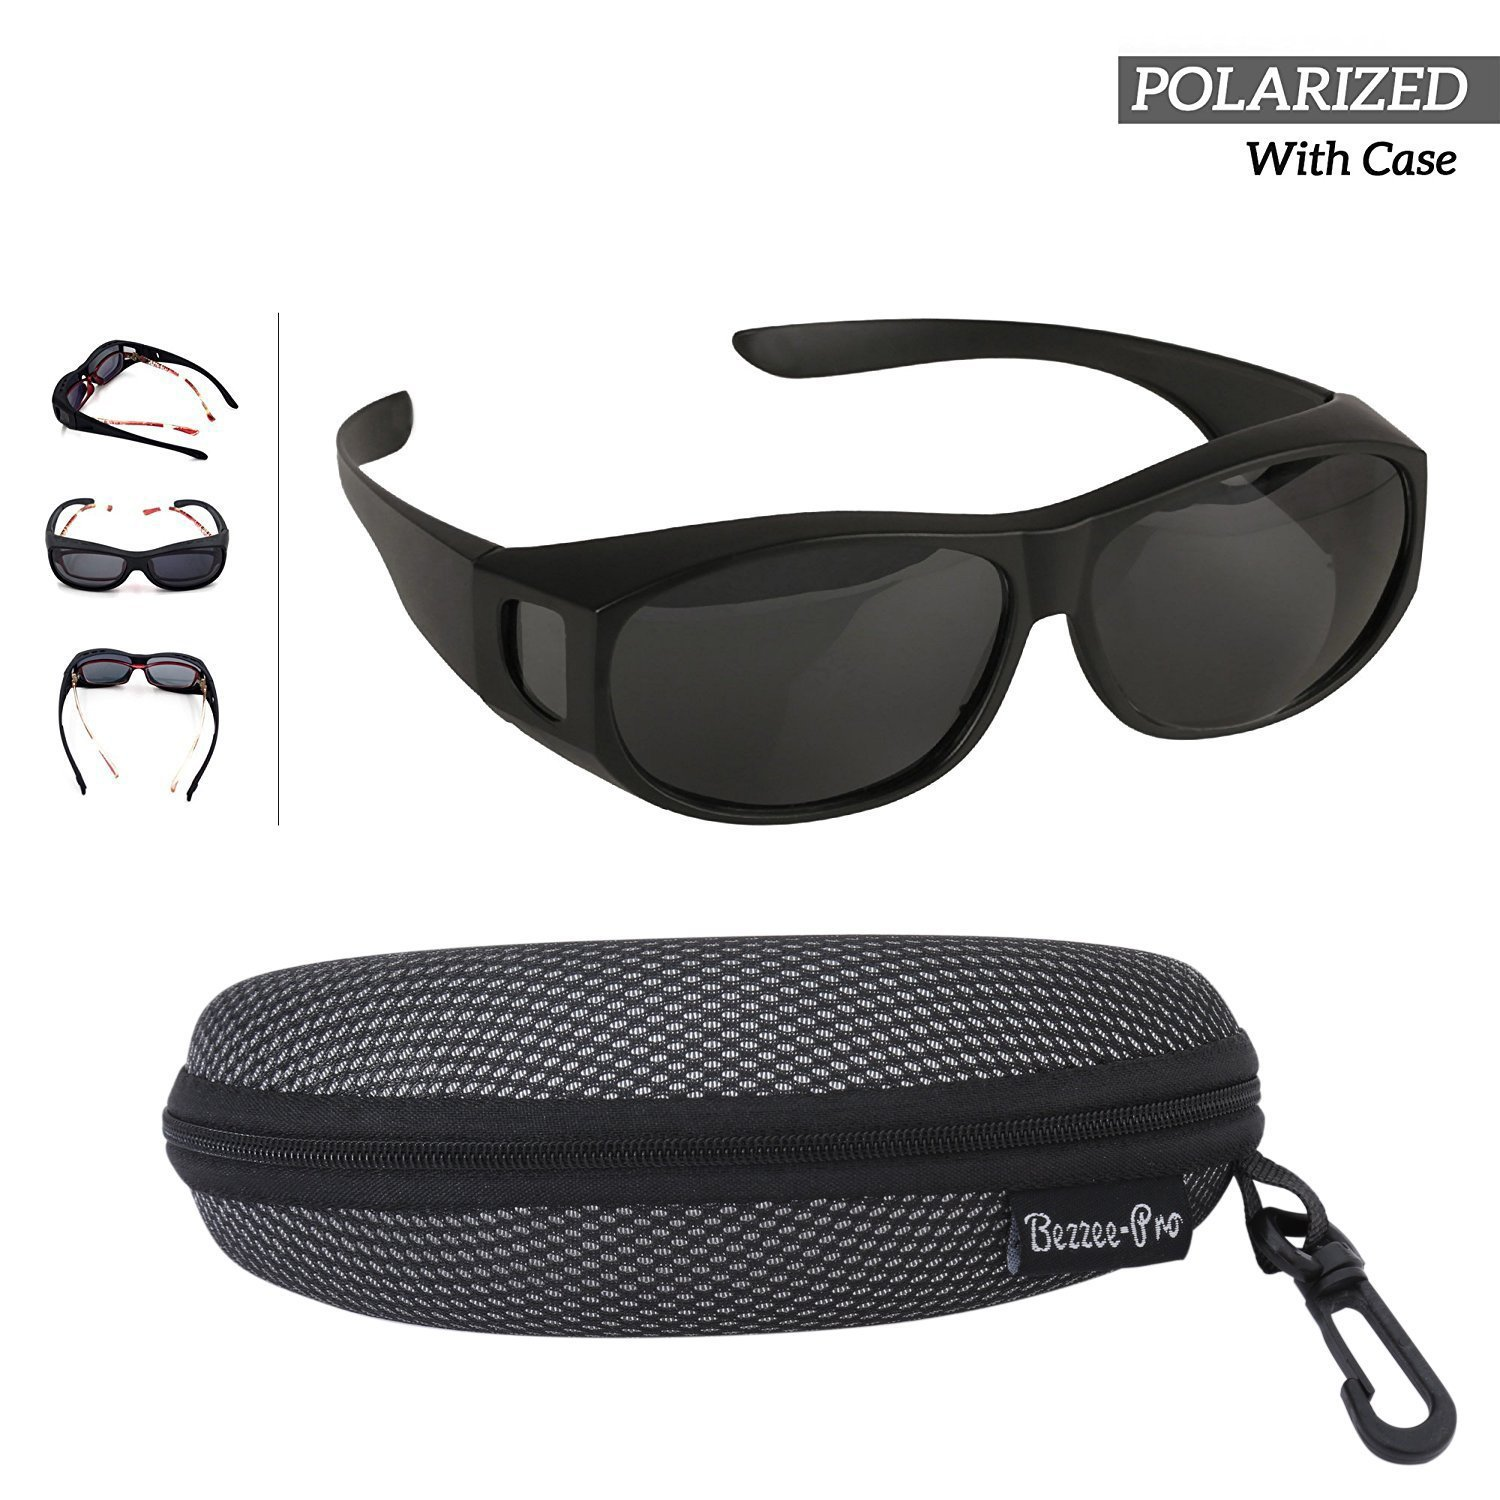 7f5c160e31d Polarized Wear Over Sunglasses - Cover For Regular Eye Glasses and  Prescription Glasses To Reduce Glare - Lightweight - Comfortable - Men and  Women Adult ...